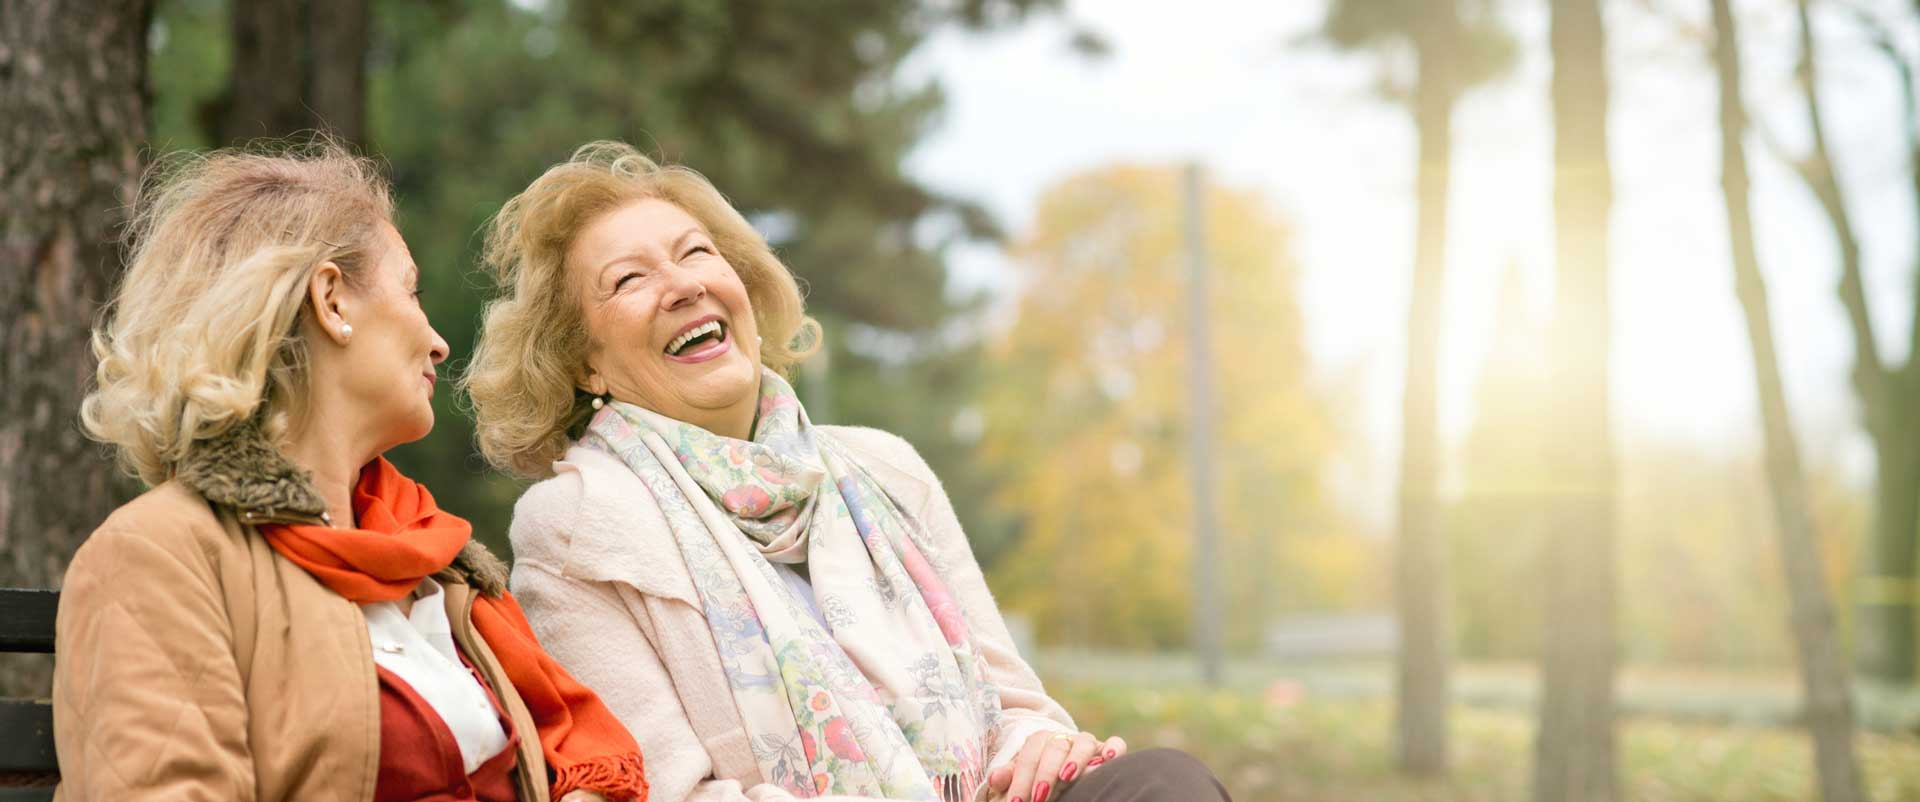 two elderly women at a park laughing